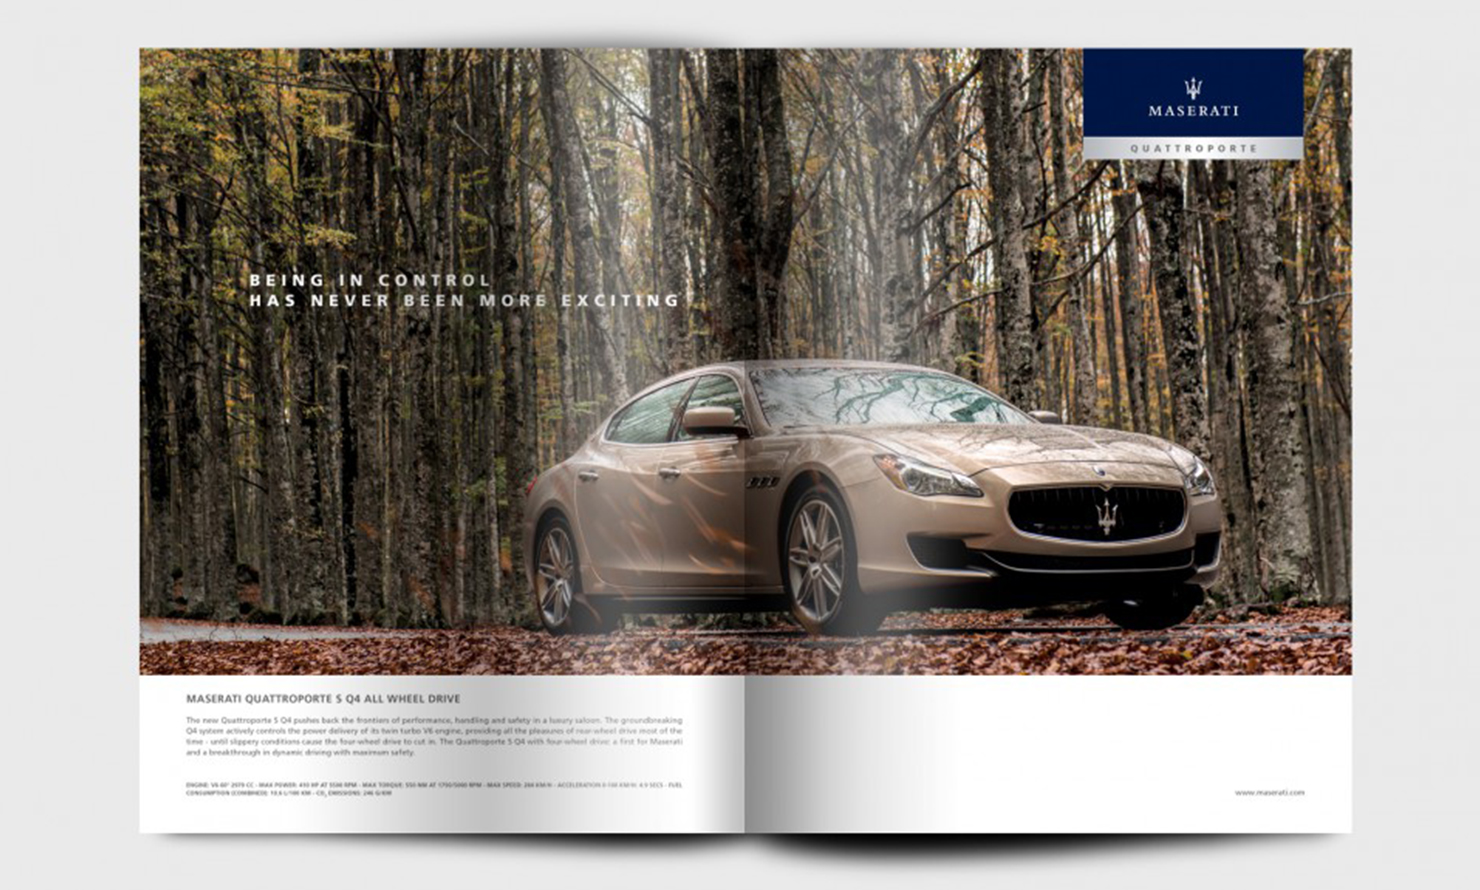 https://kubelibre.com/uploads/Slider-work-tutti-clienti/maserati-quattroporte-SQ-4-AWD-being-in-control-has-never-been-more-exciting-2.jpg